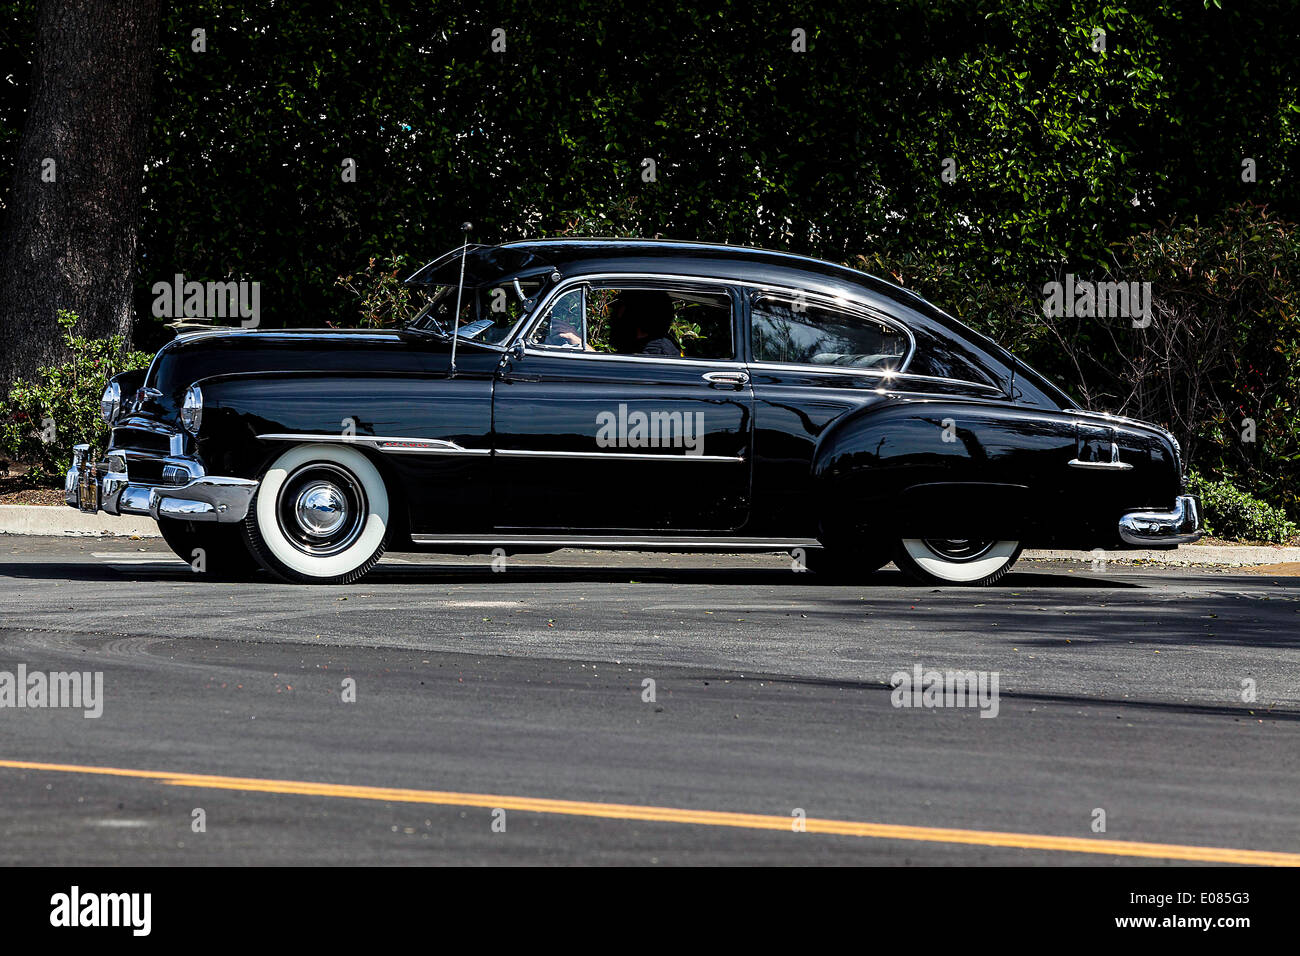 All Chevy 1951 chevy styleline deluxe : A 1951 Chevy Styleline Deluxe Stock Photo, Royalty Free Image ...